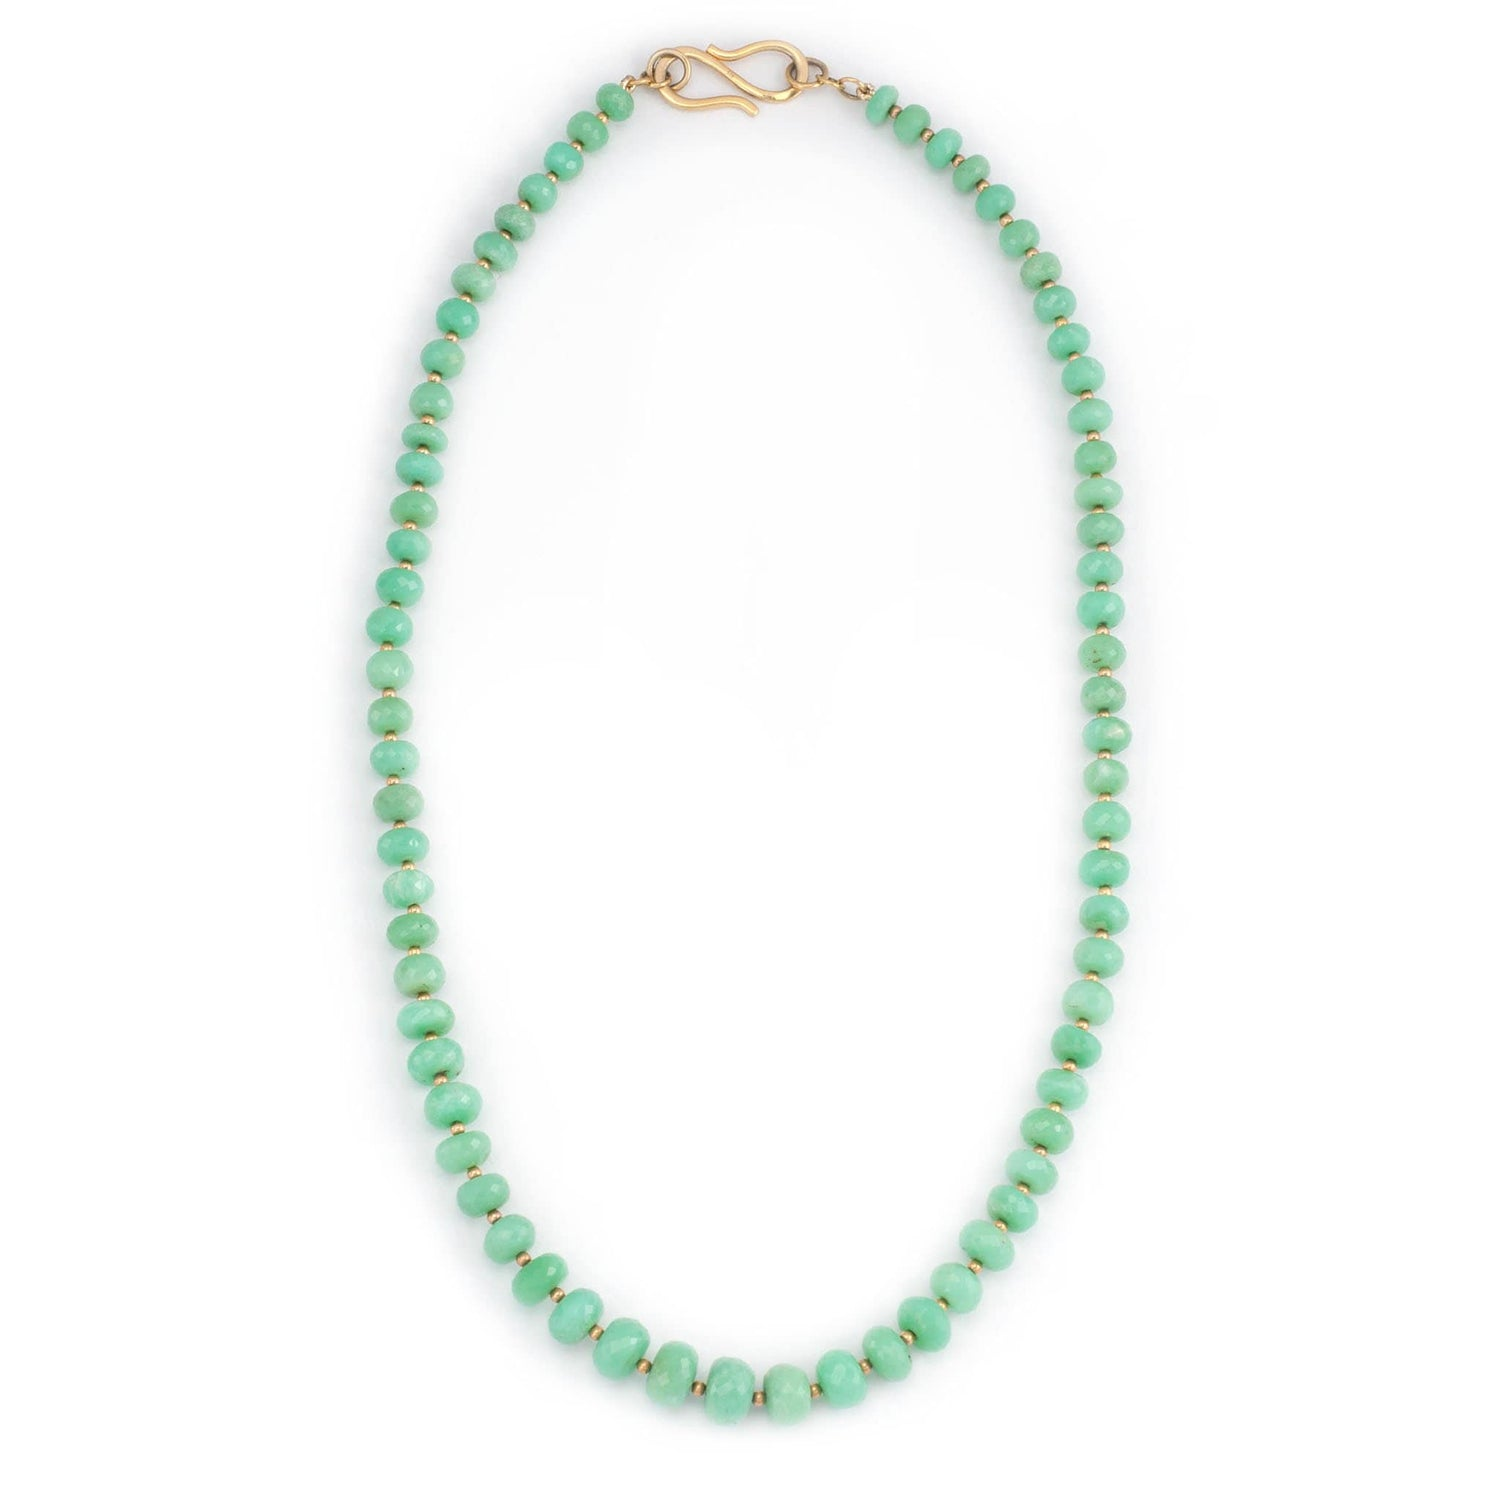 Chrysoprase Strand Necklace